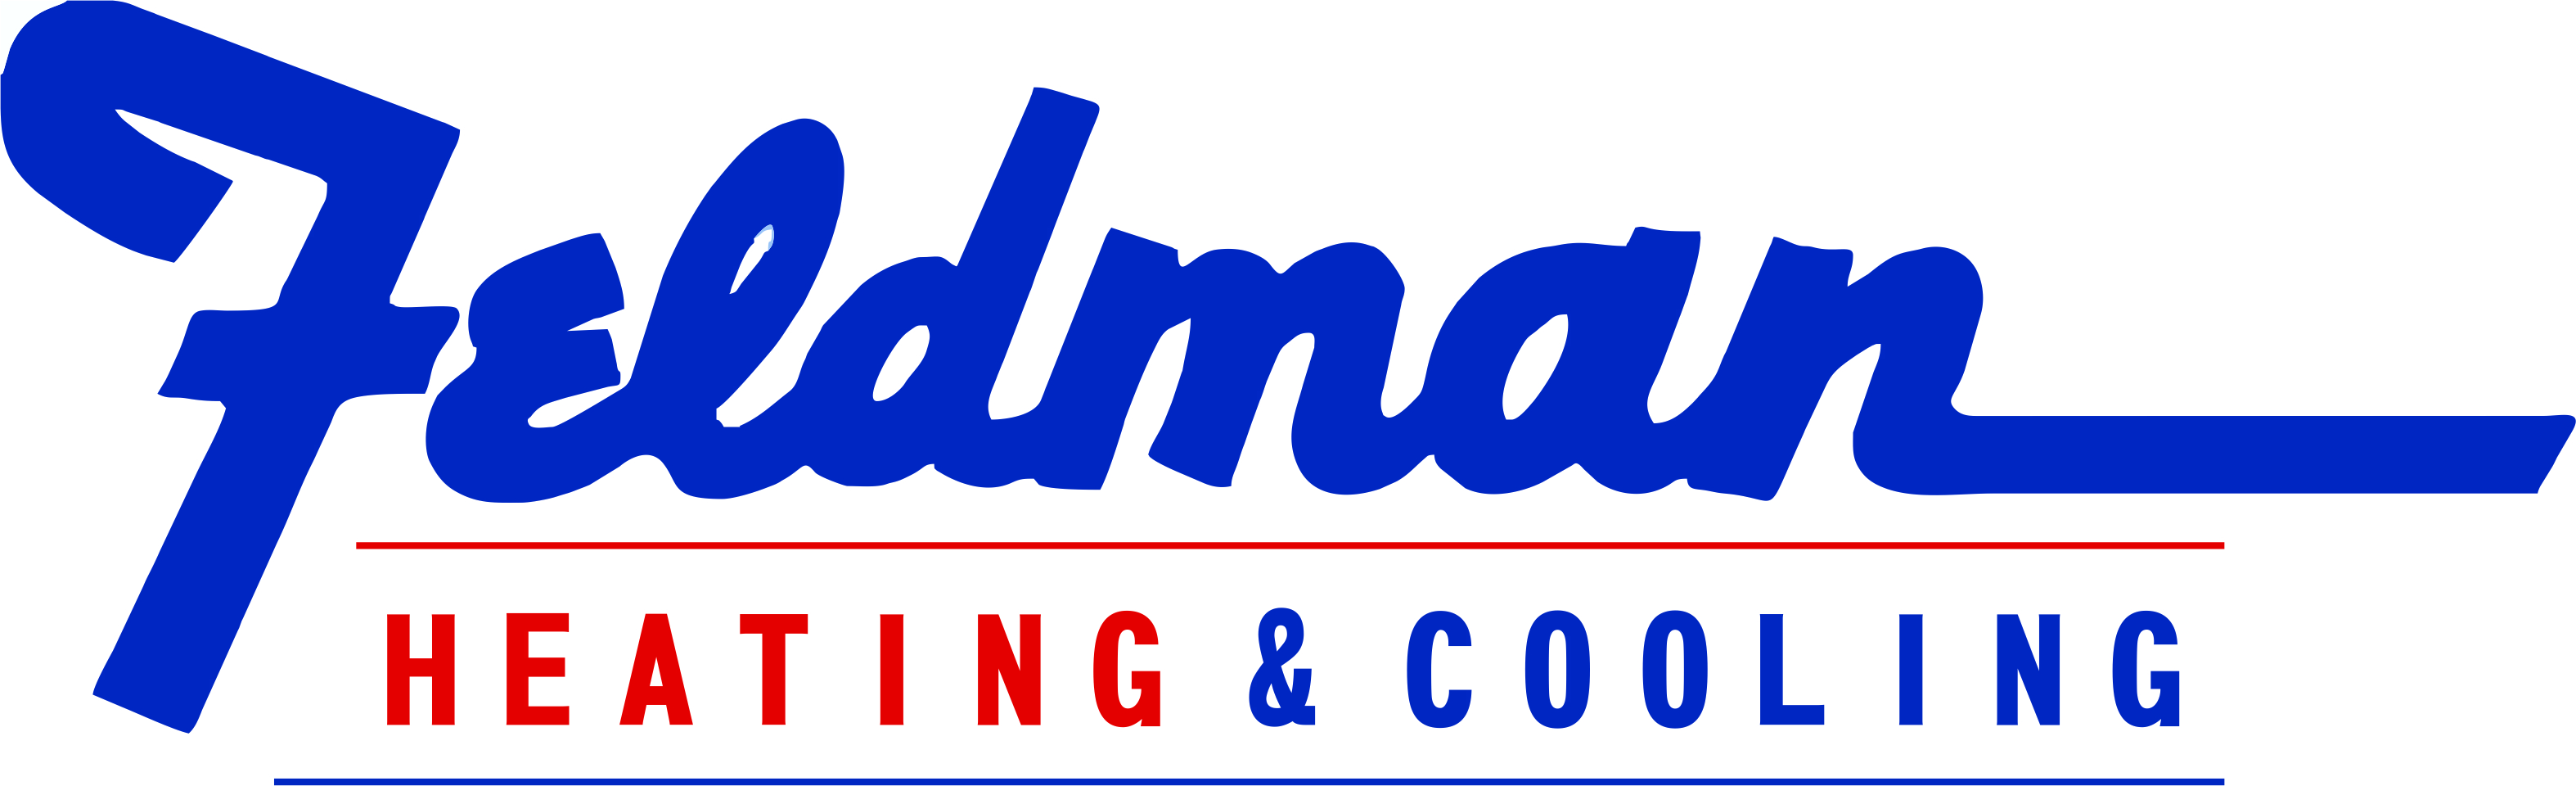 Feldman Heating and Cooling